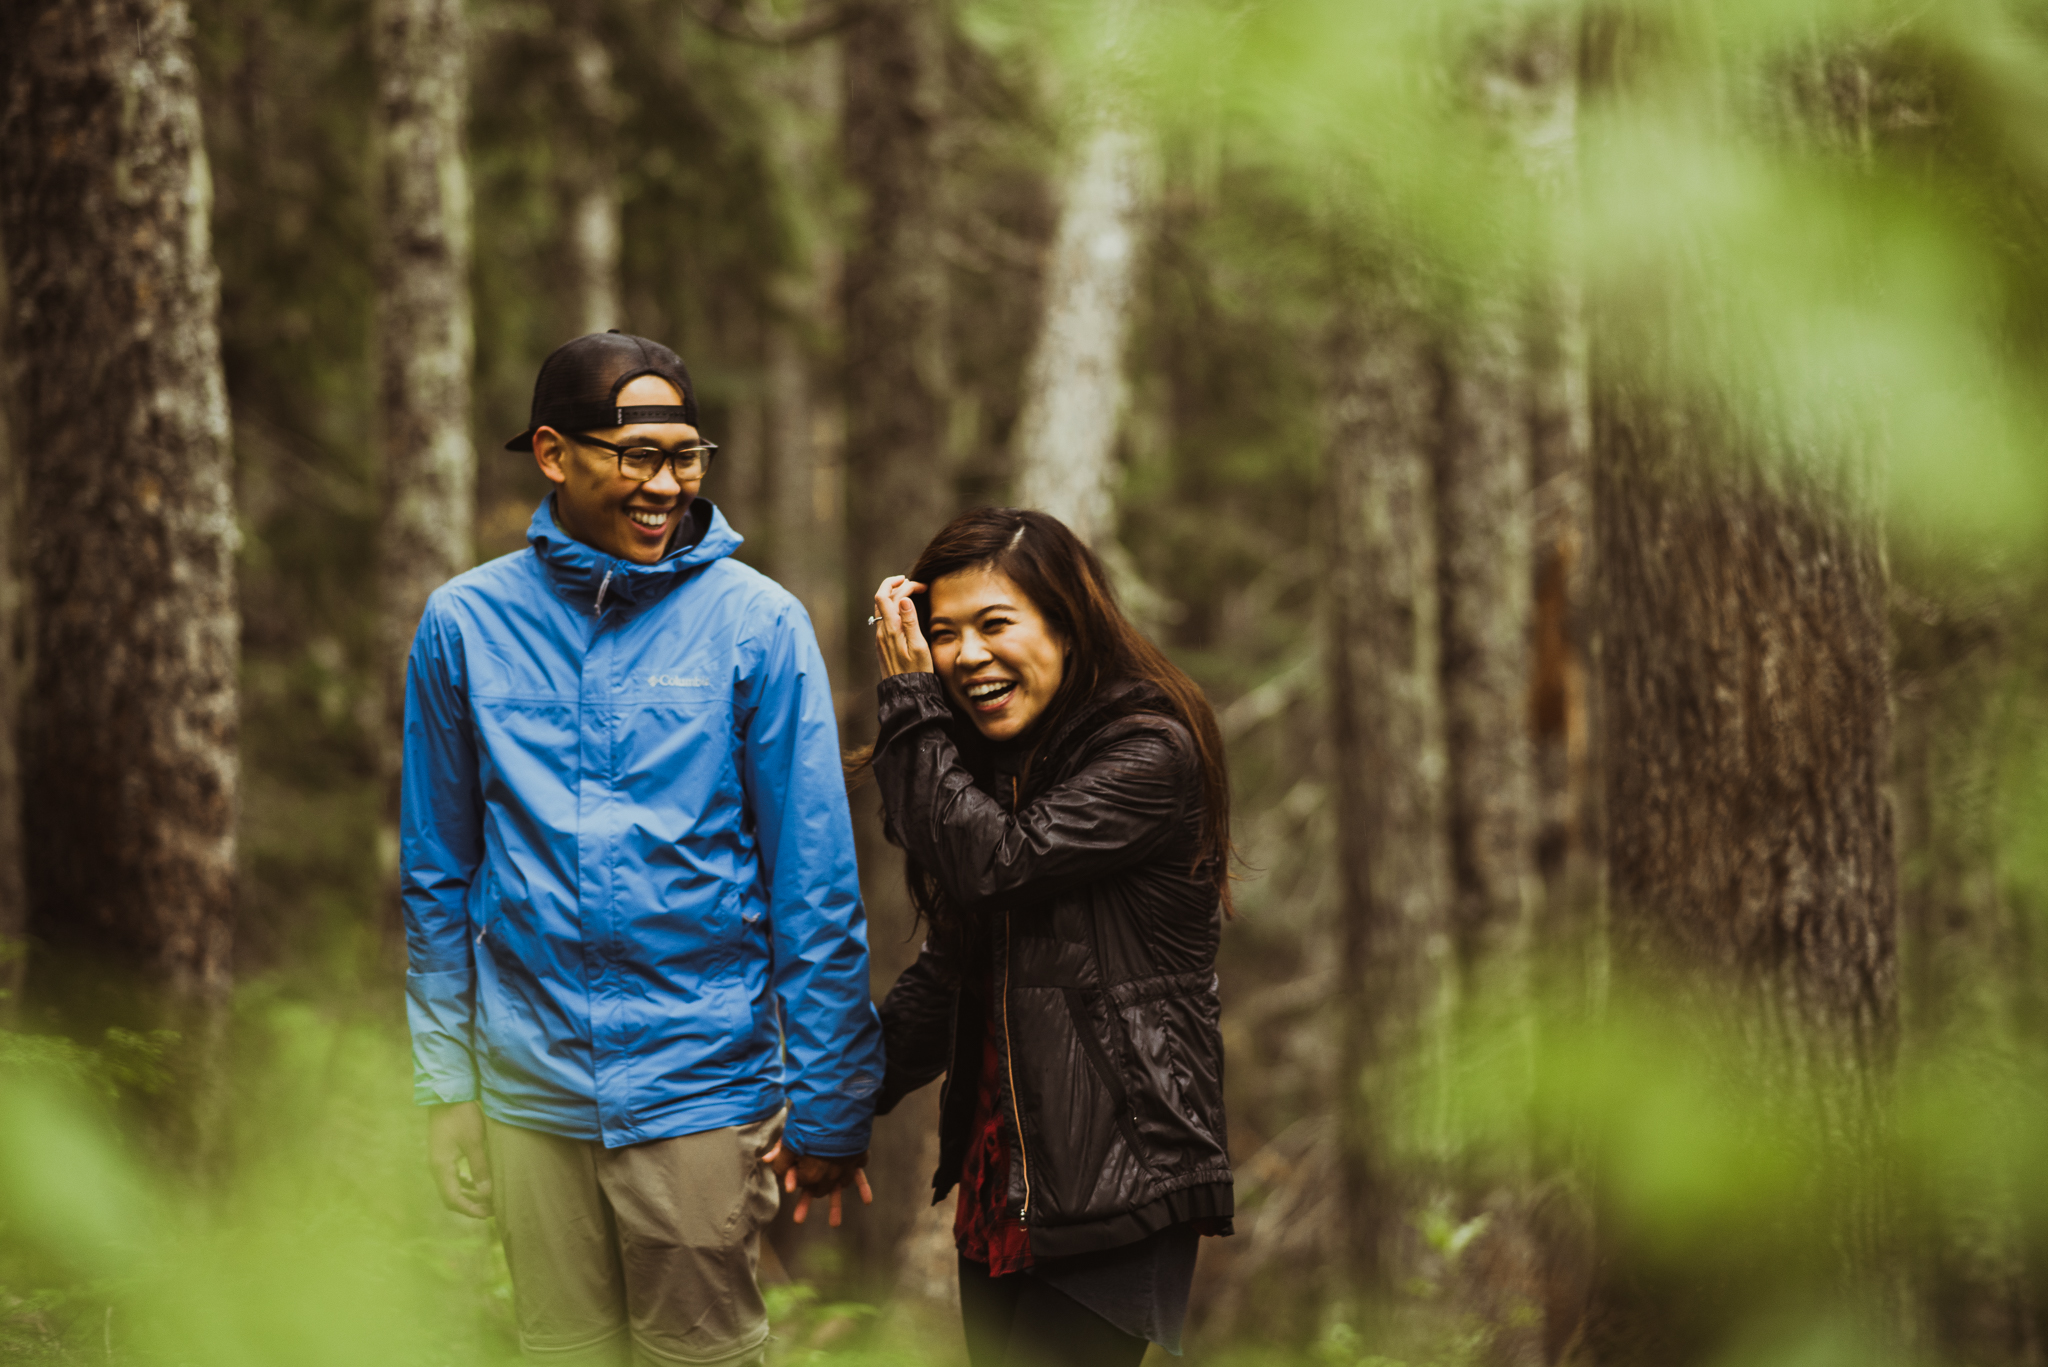 ©Isaiah-&-Taylor-Photography---Hidden-Lake-Cascade-Mountains-Engagement,-Washington-014.jpg